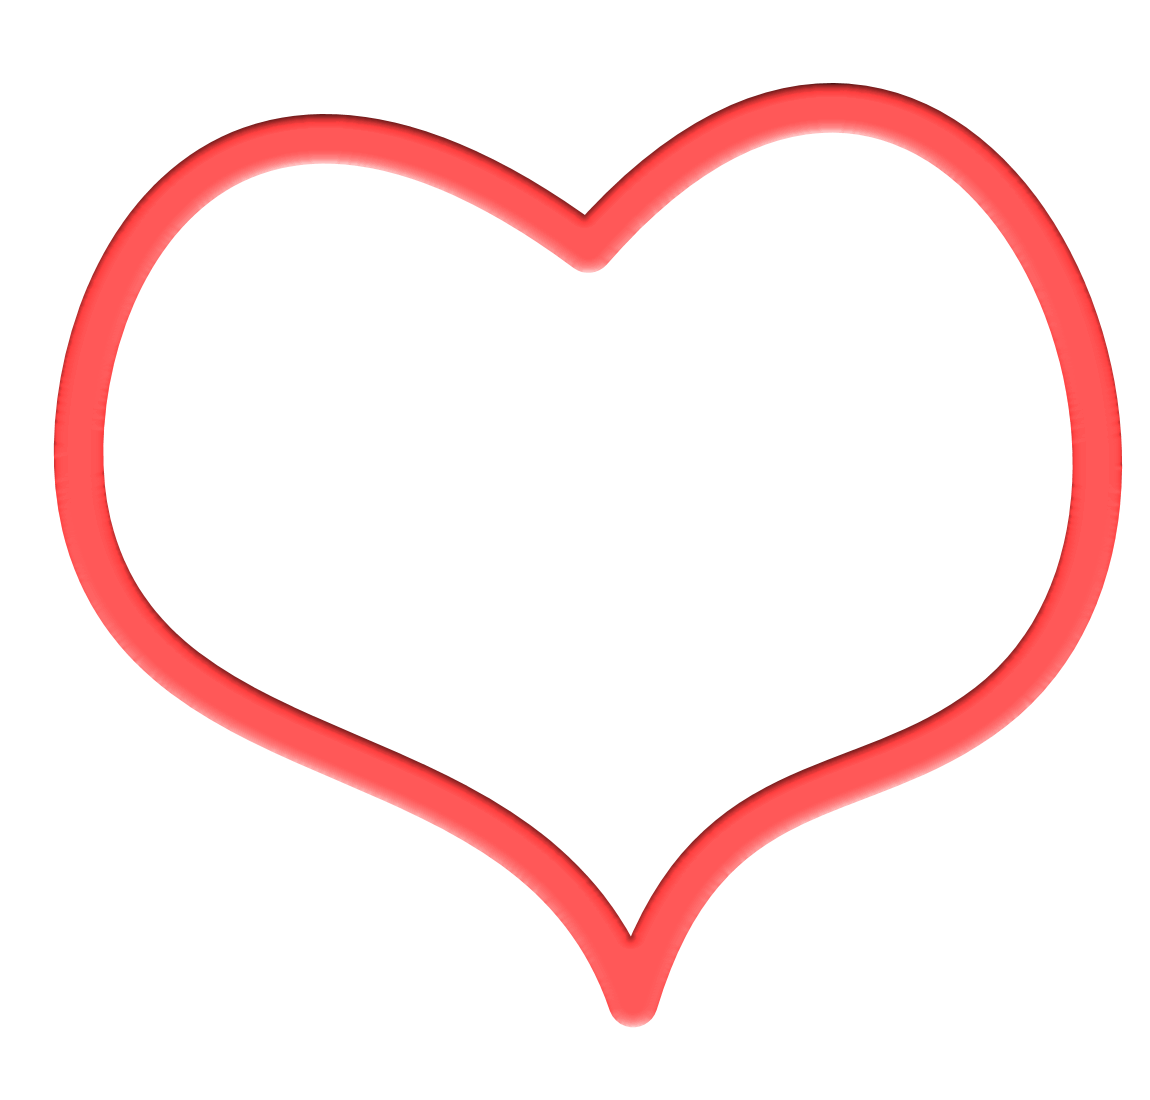 12 Transparent Heart Clip Art   Free Cliparts That You Can Download To